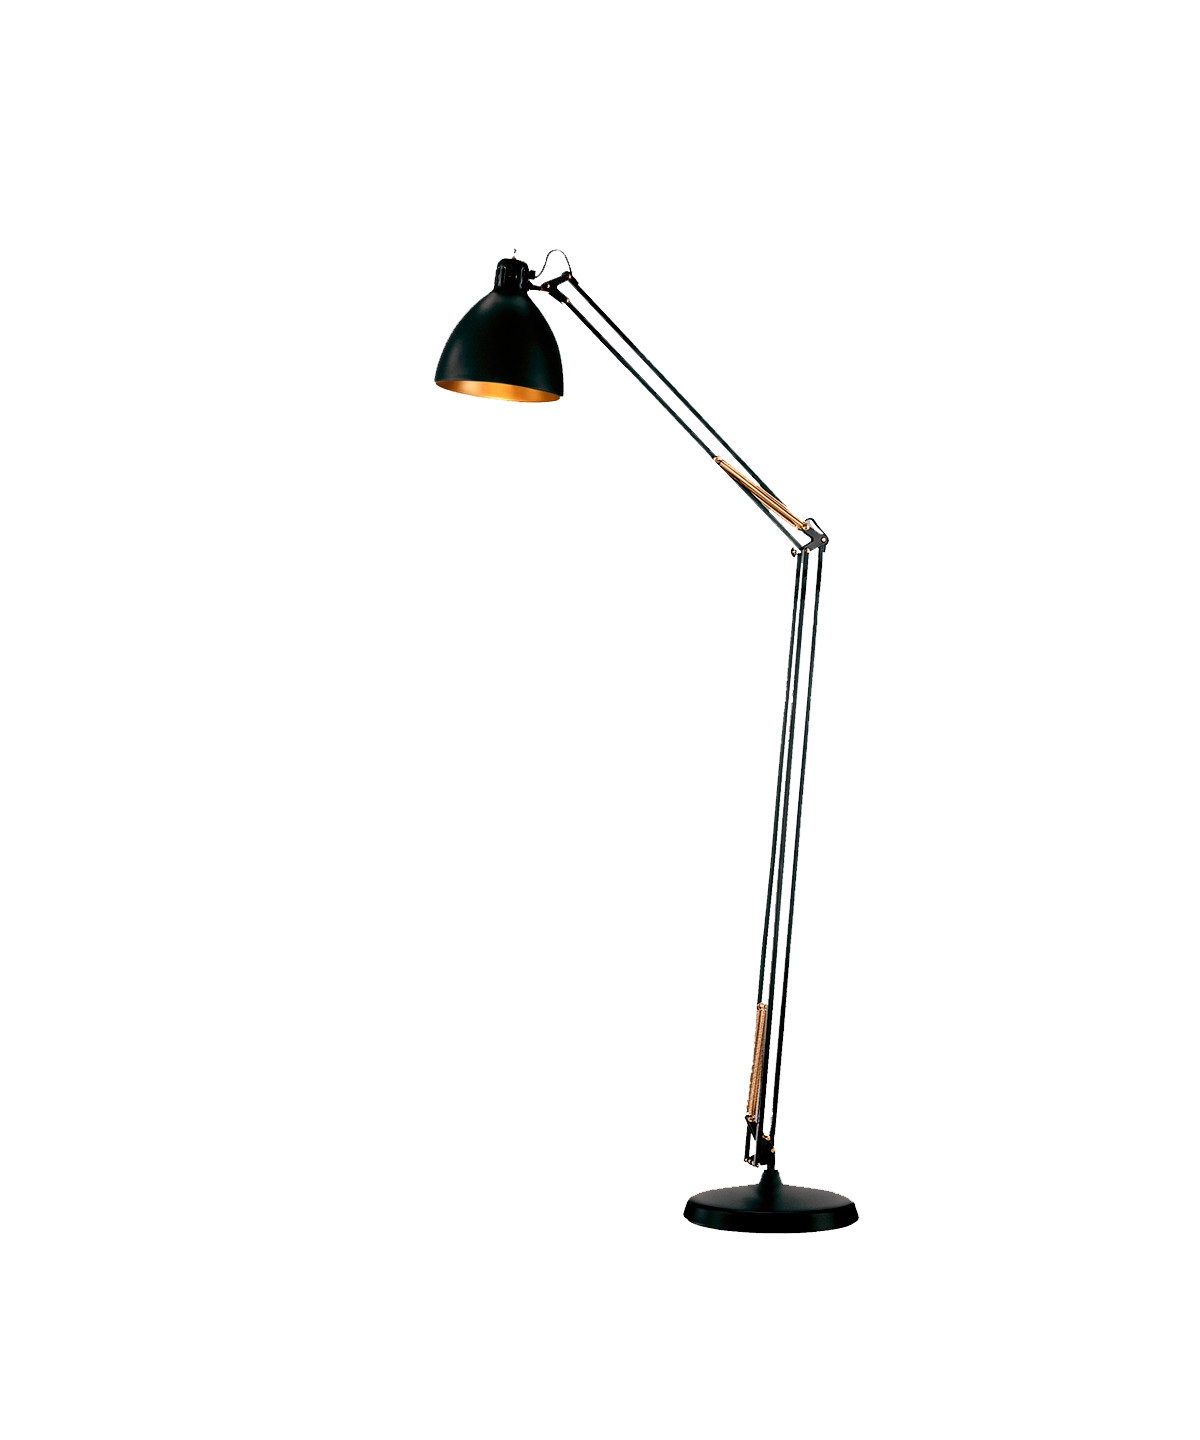 Image of   Archi F1 Gulvlampe Ø16 Sort/Guld - LIGHT-POINT